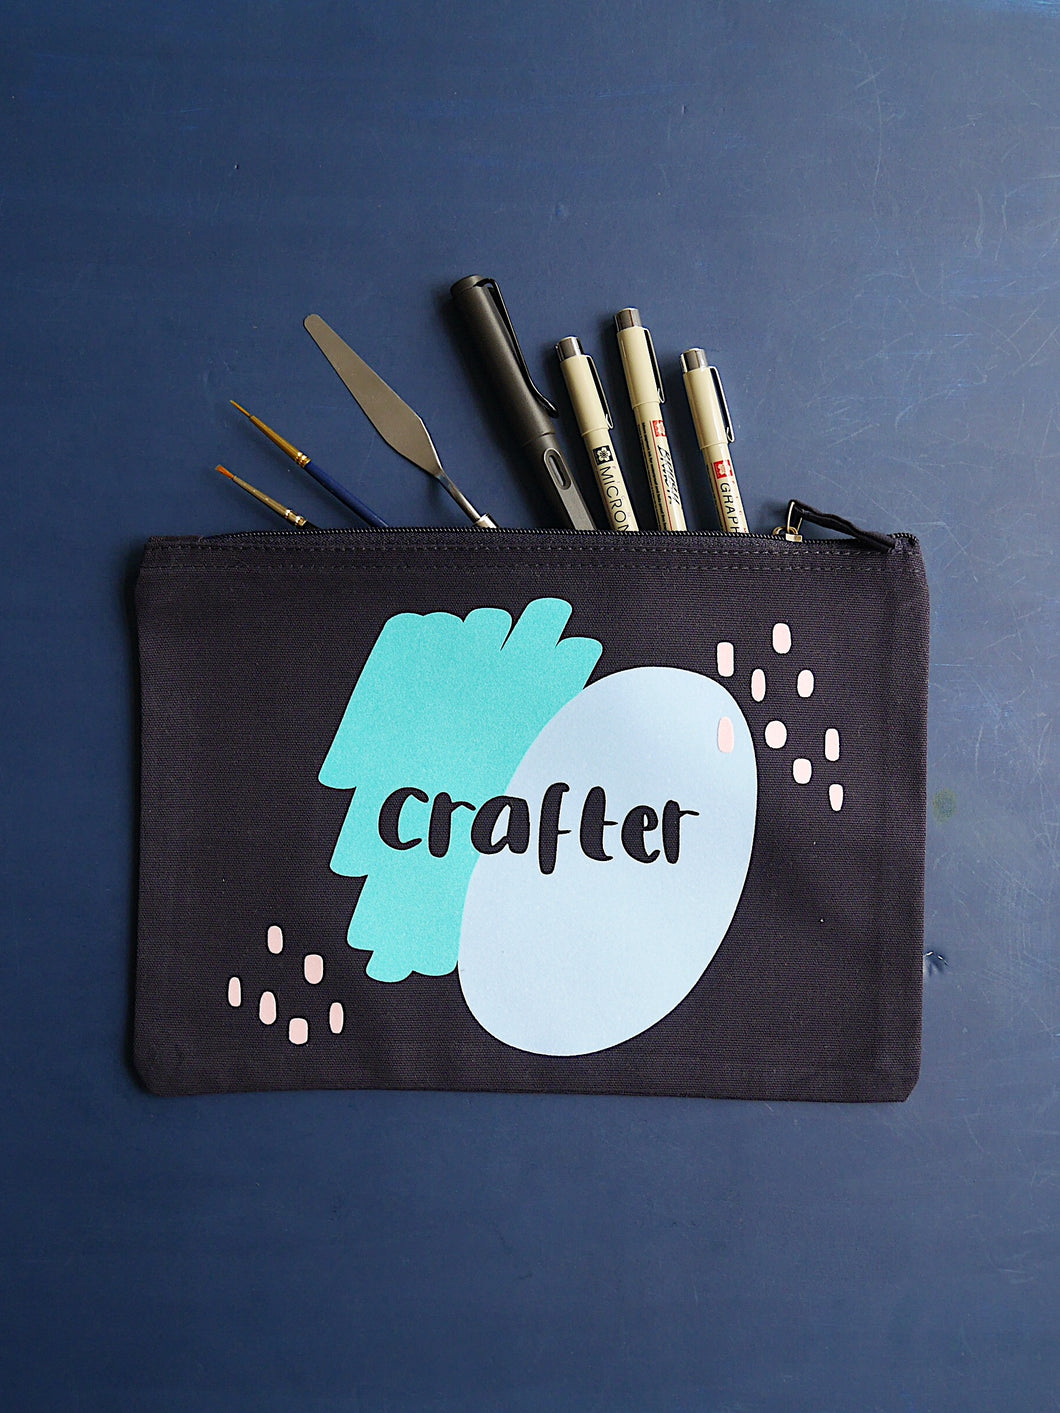 Grizzli Bear navy large zip pouch with crafter printed in blue flock, with paint brushes and pens